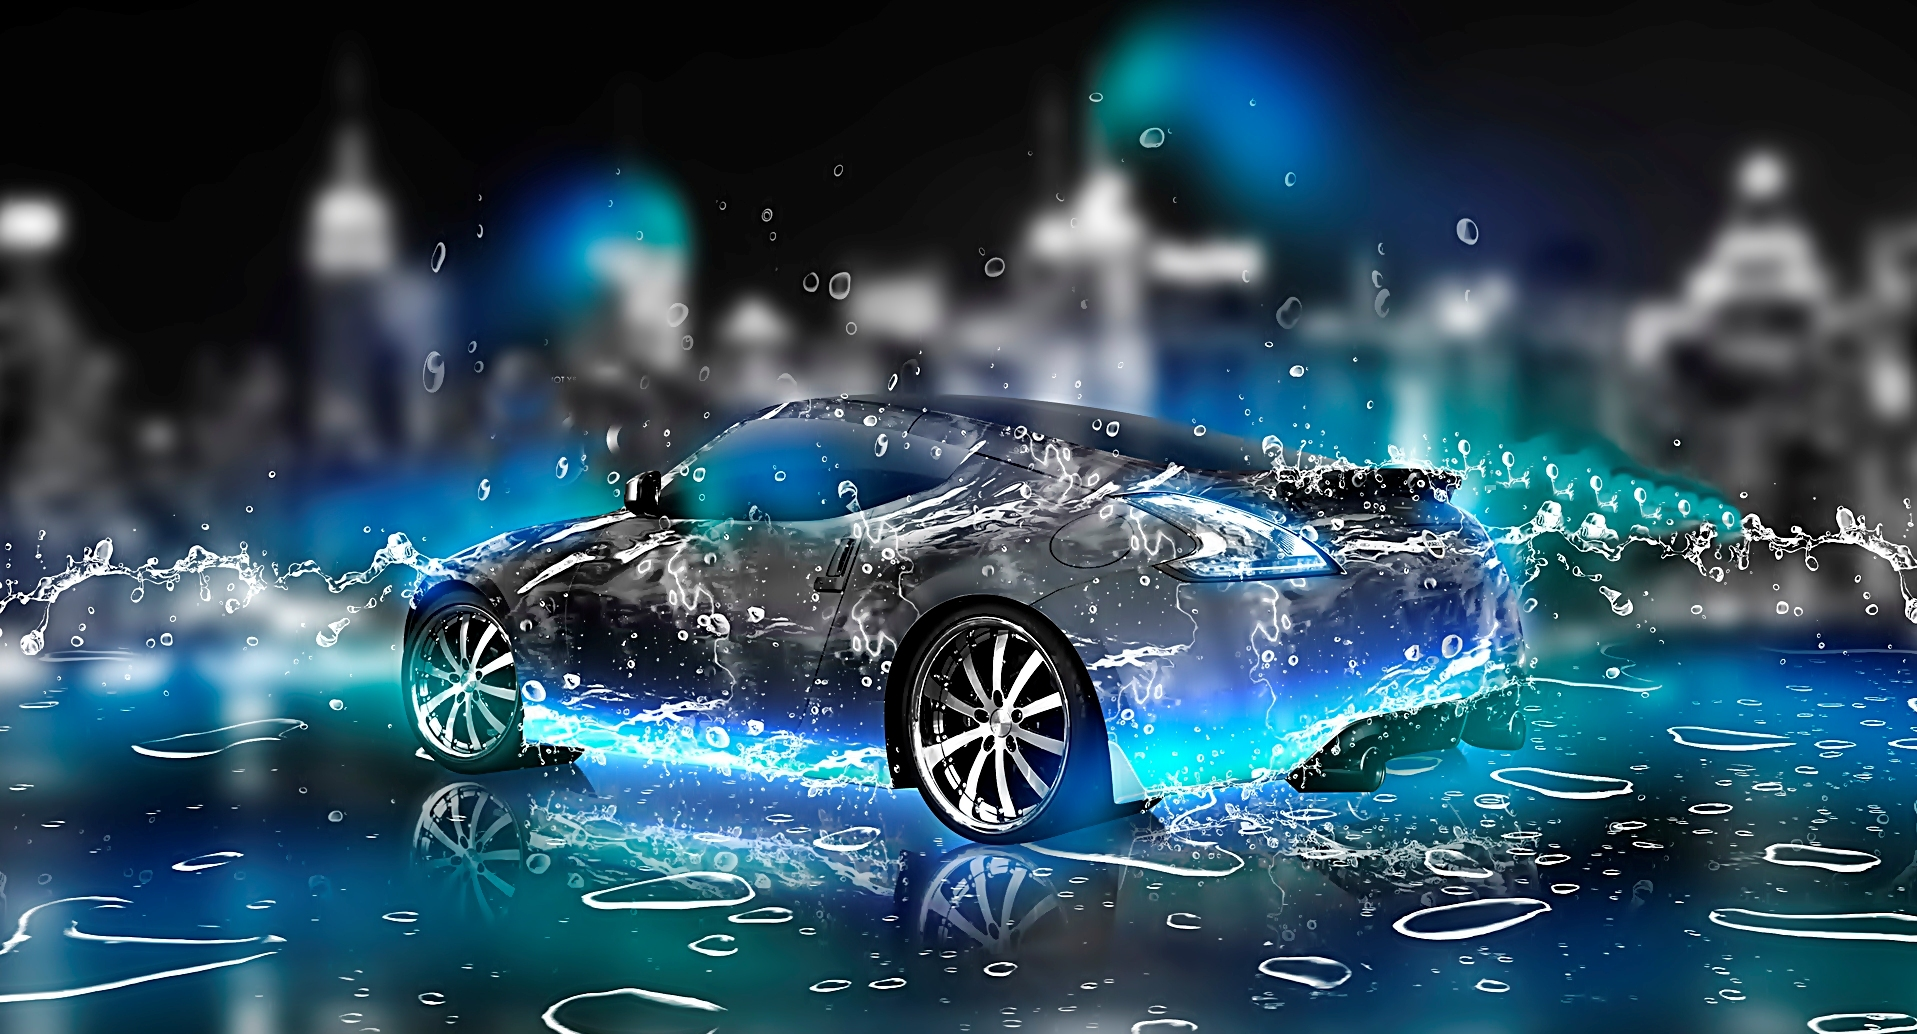 3d Wallpaper Cars Hd Wallpapers Hd Backgrounds Tumblr